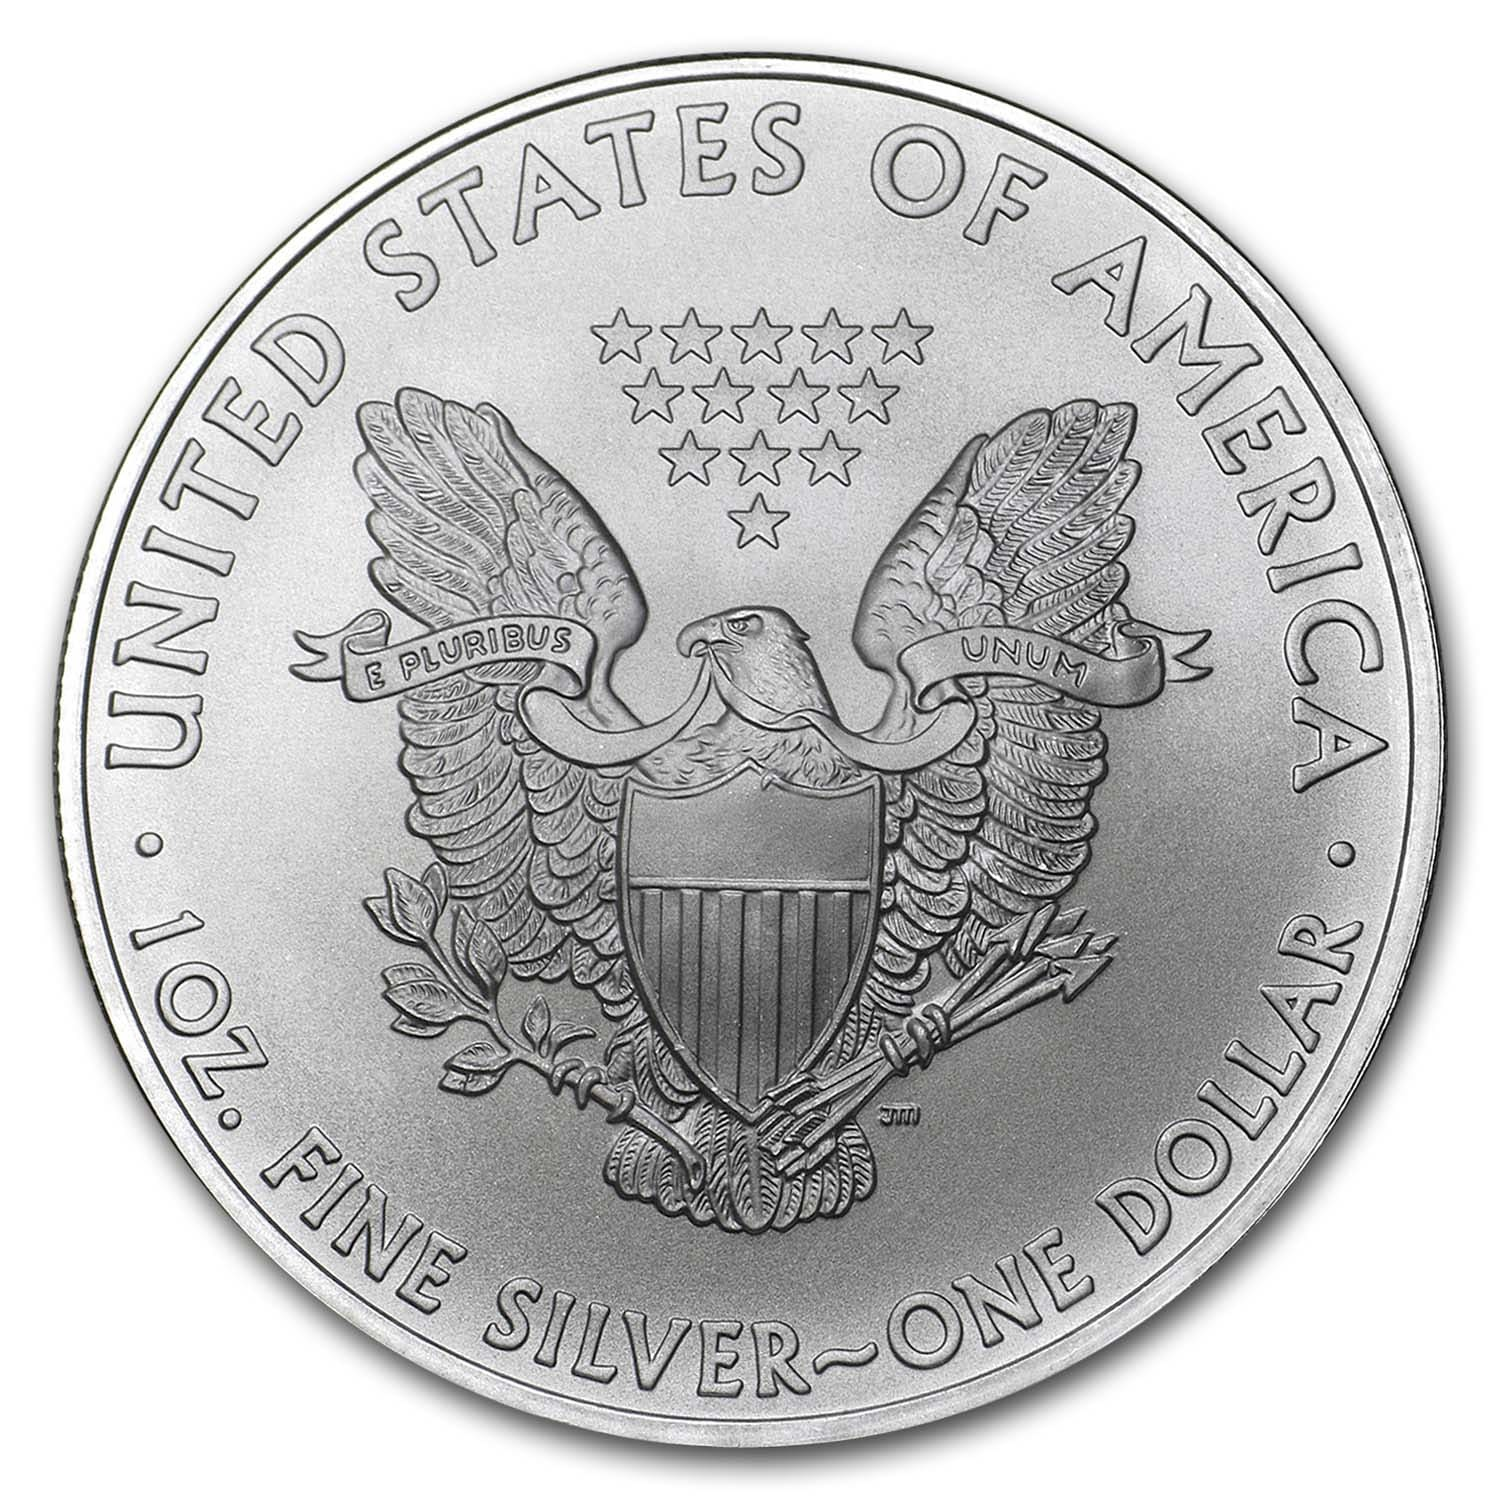 2009 1 oz Silver American Eagle (Brilliant Uncirculated)